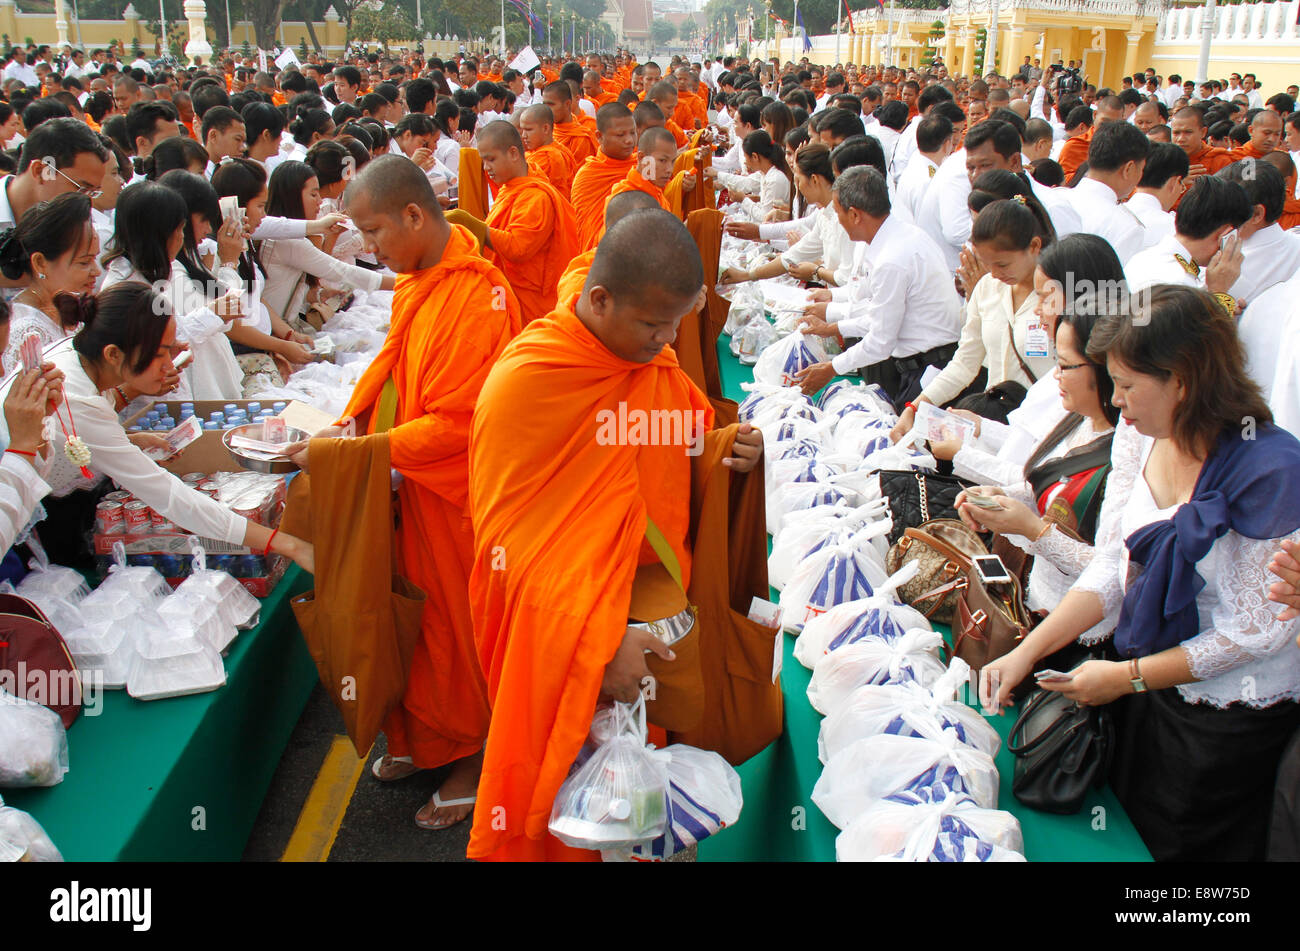 Phnom Penh, Cambodia. 15th Oct, 2014. People give alms to monks during the ceremony marking the 2nd anniversary - Stock Image